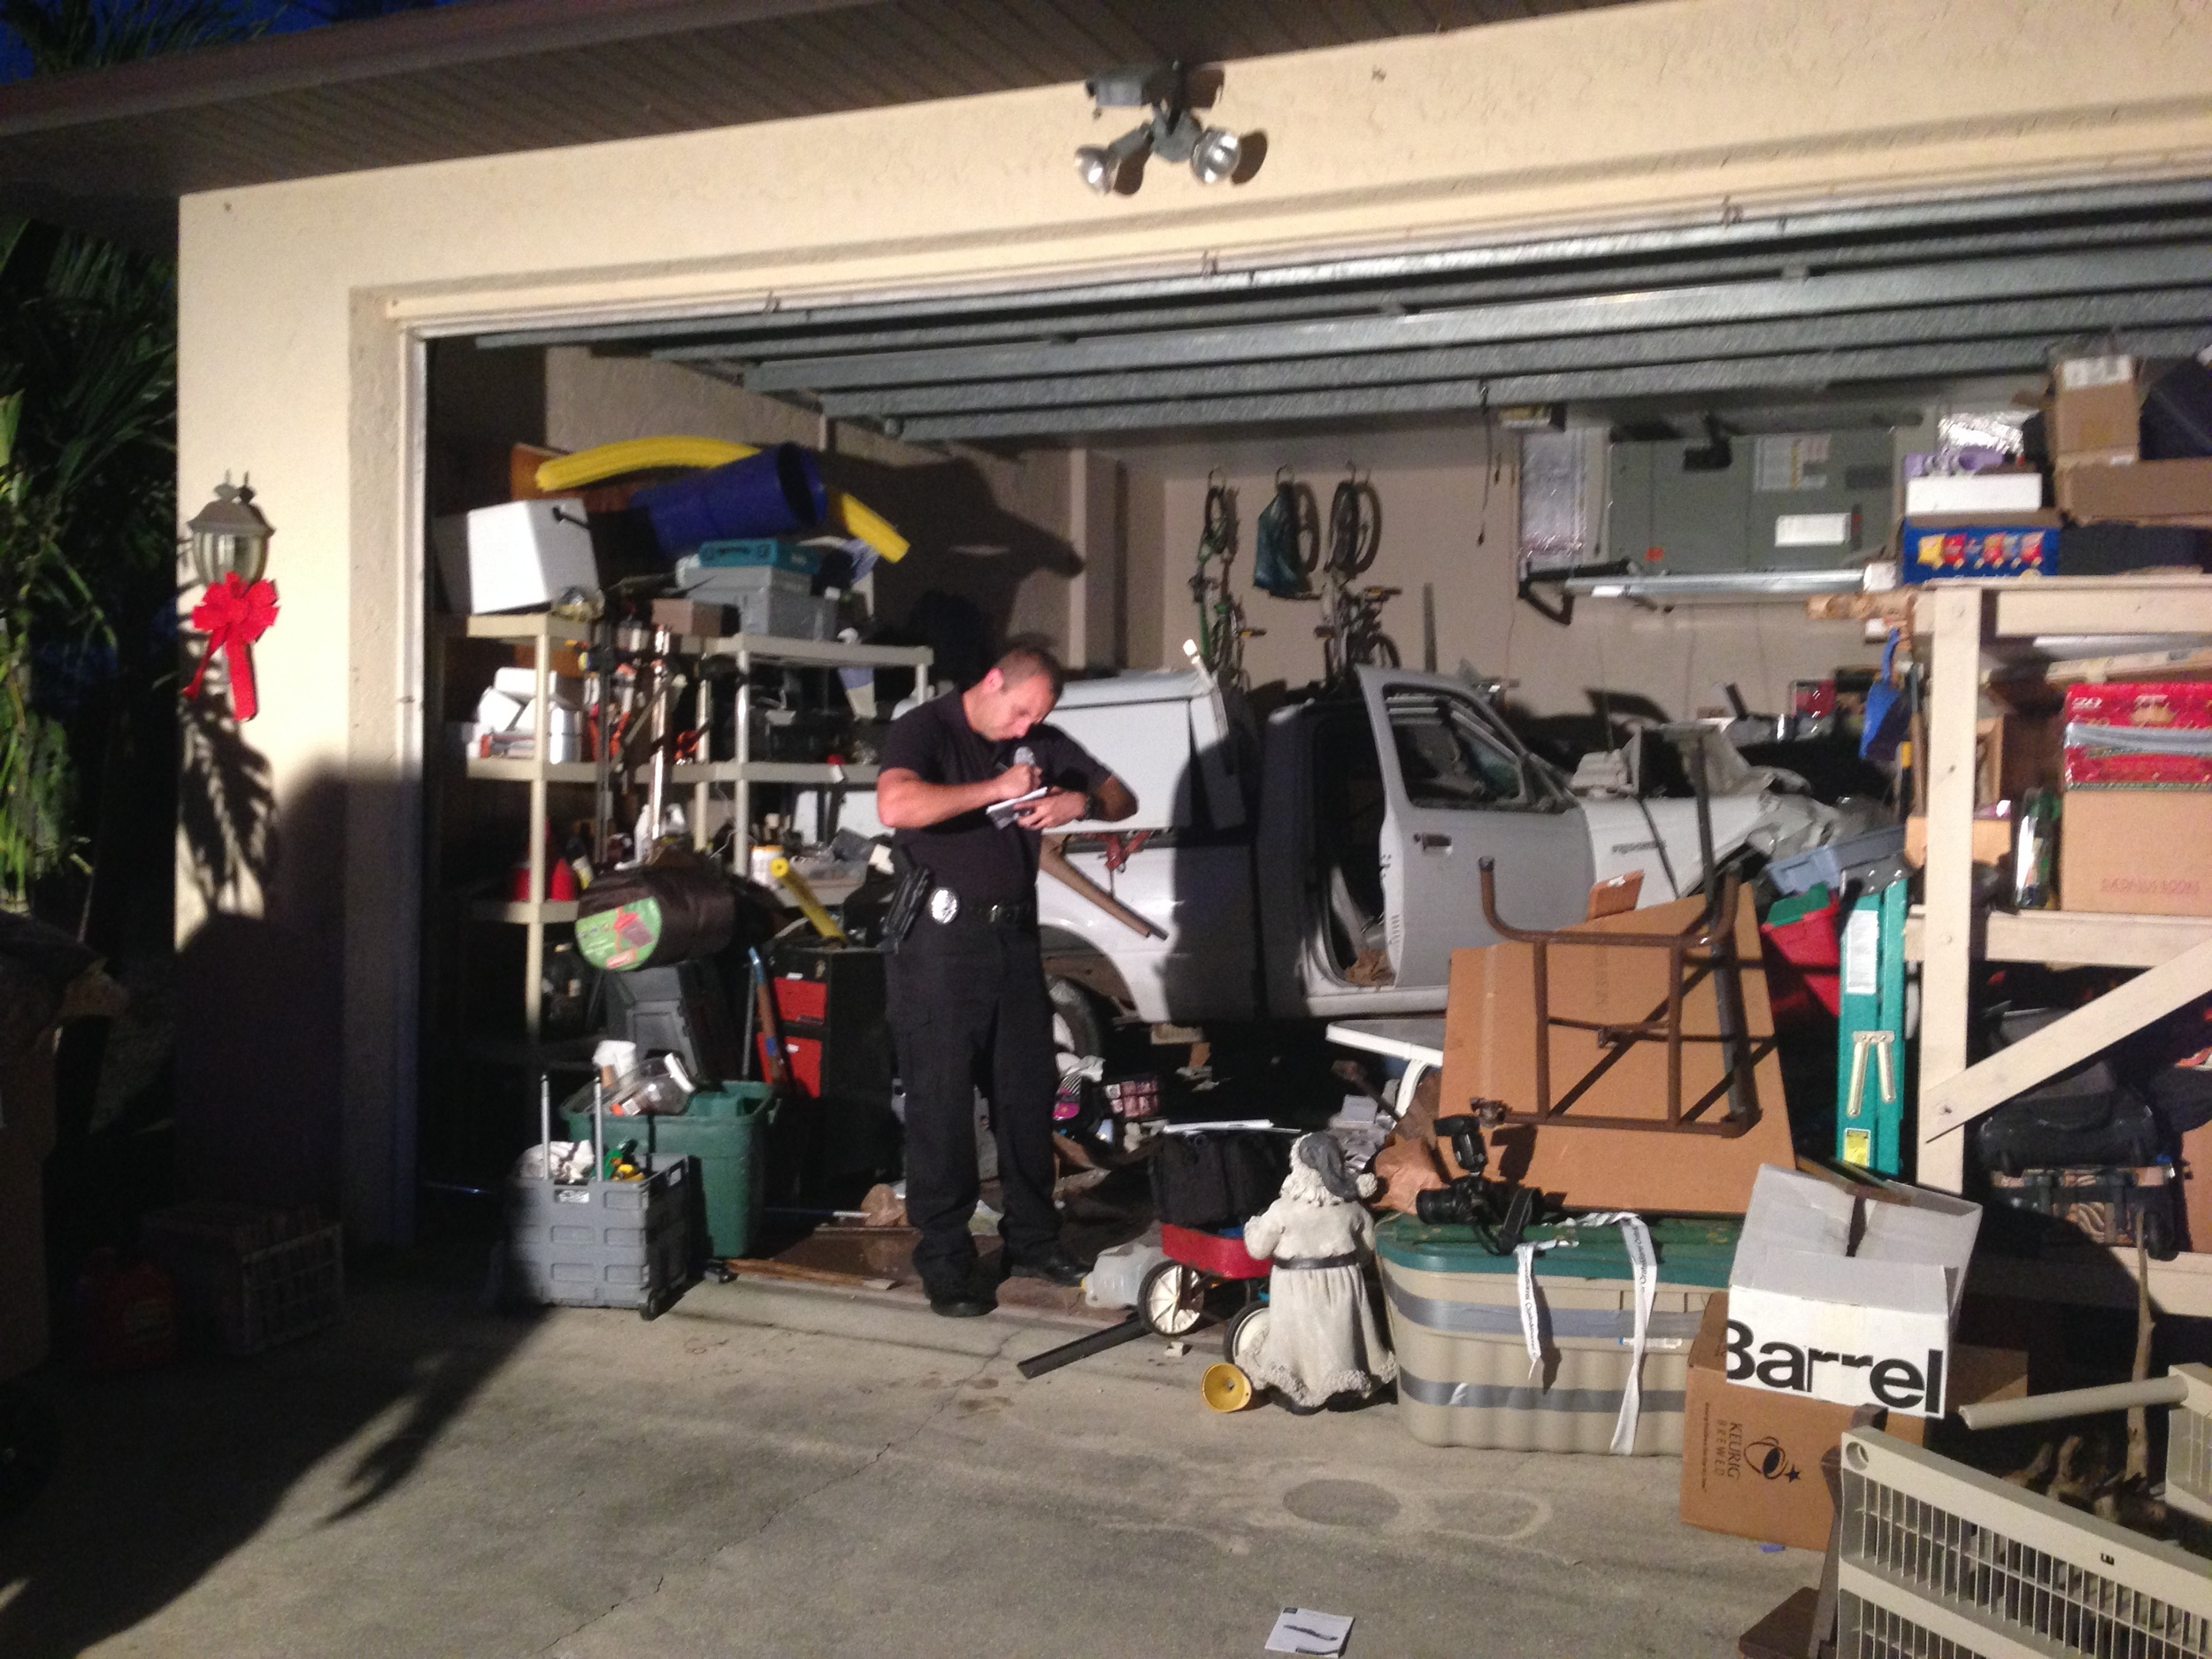 PHOTO: On December 19, 2013 at 4:27 PM,Cape Coral Police Department responded to a SW Cape Coral home where a driver crashed his white pickup truck into a home. (Photo Courtesy ofCape Coral Police Department)